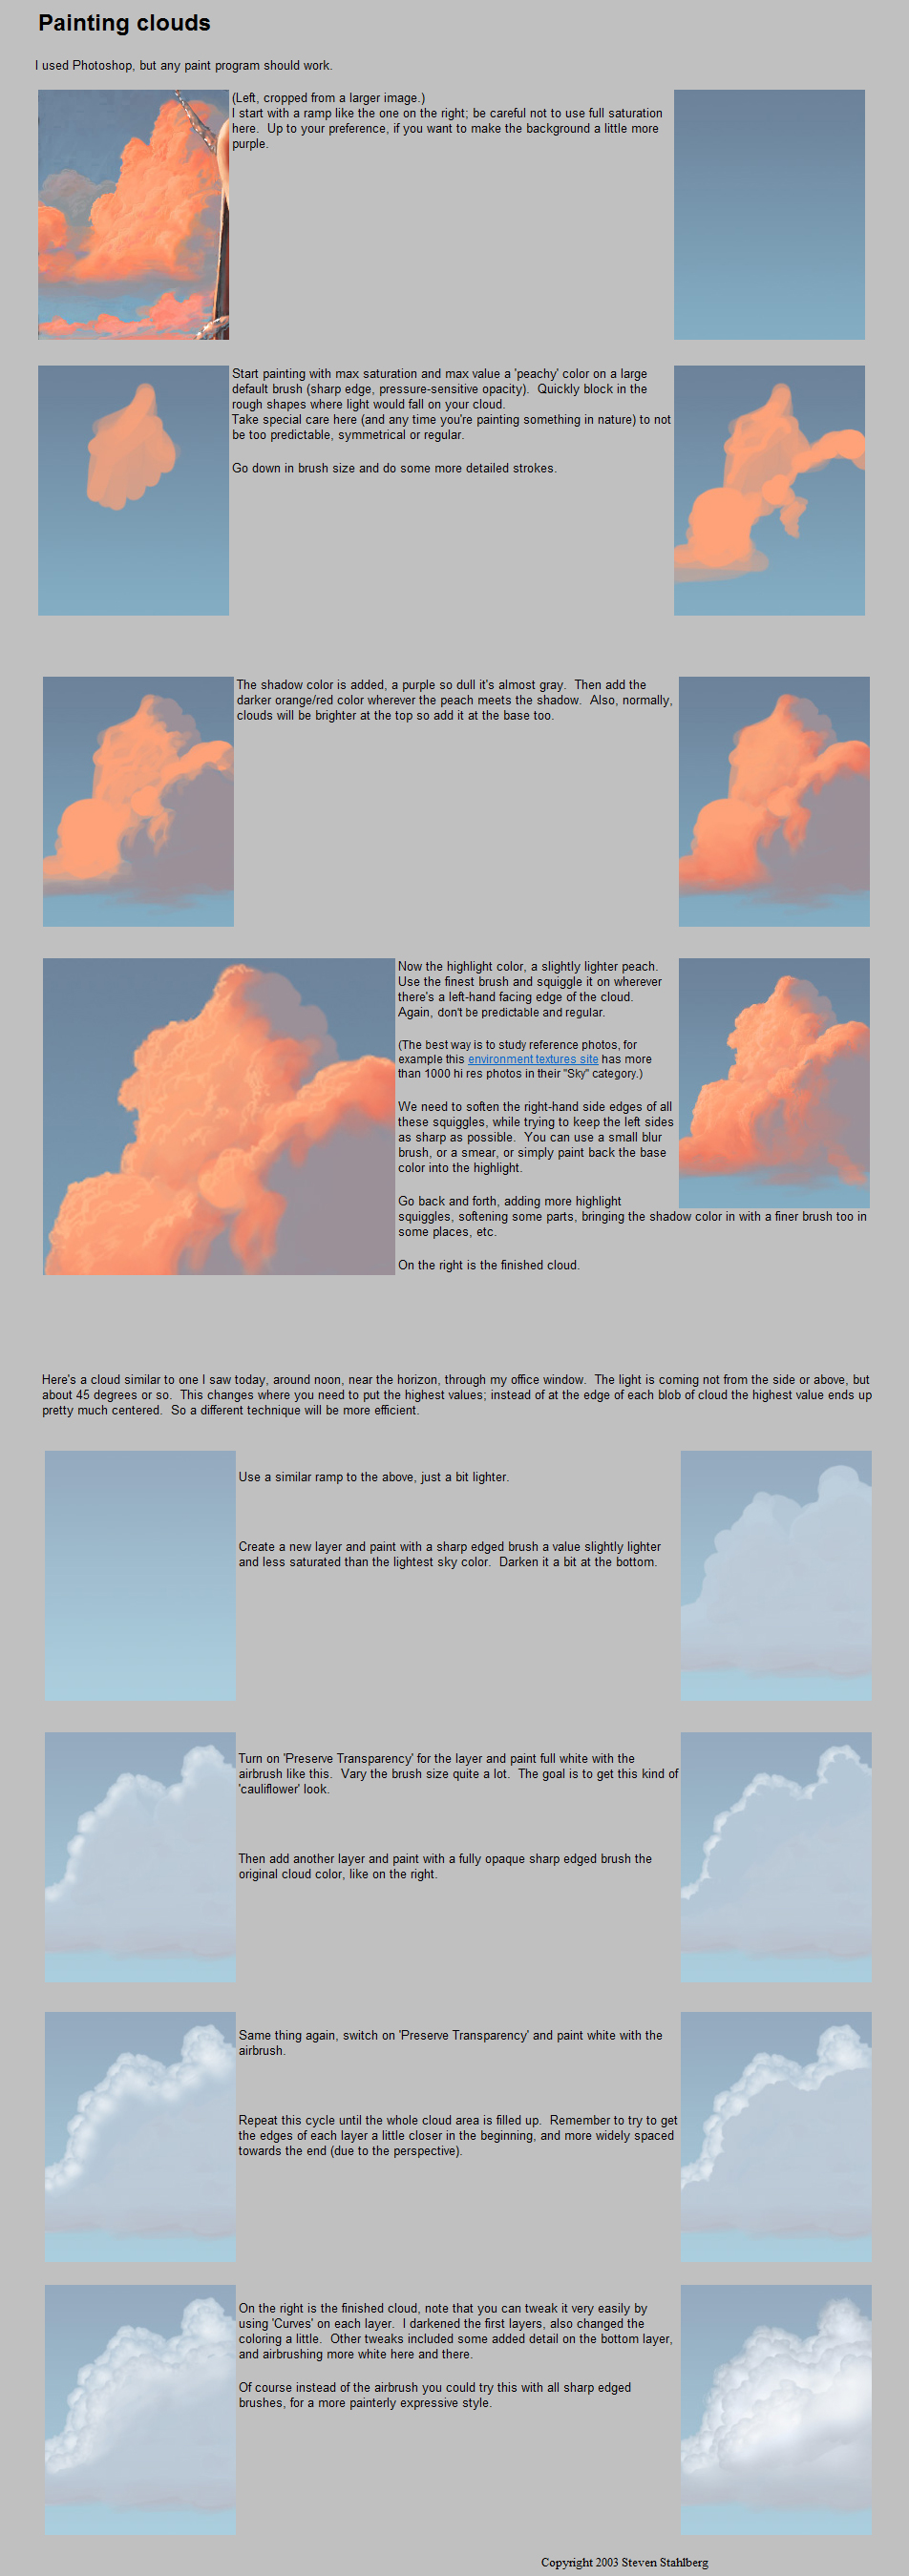 How to paint clouds tutorial via http//artkink.tumblr